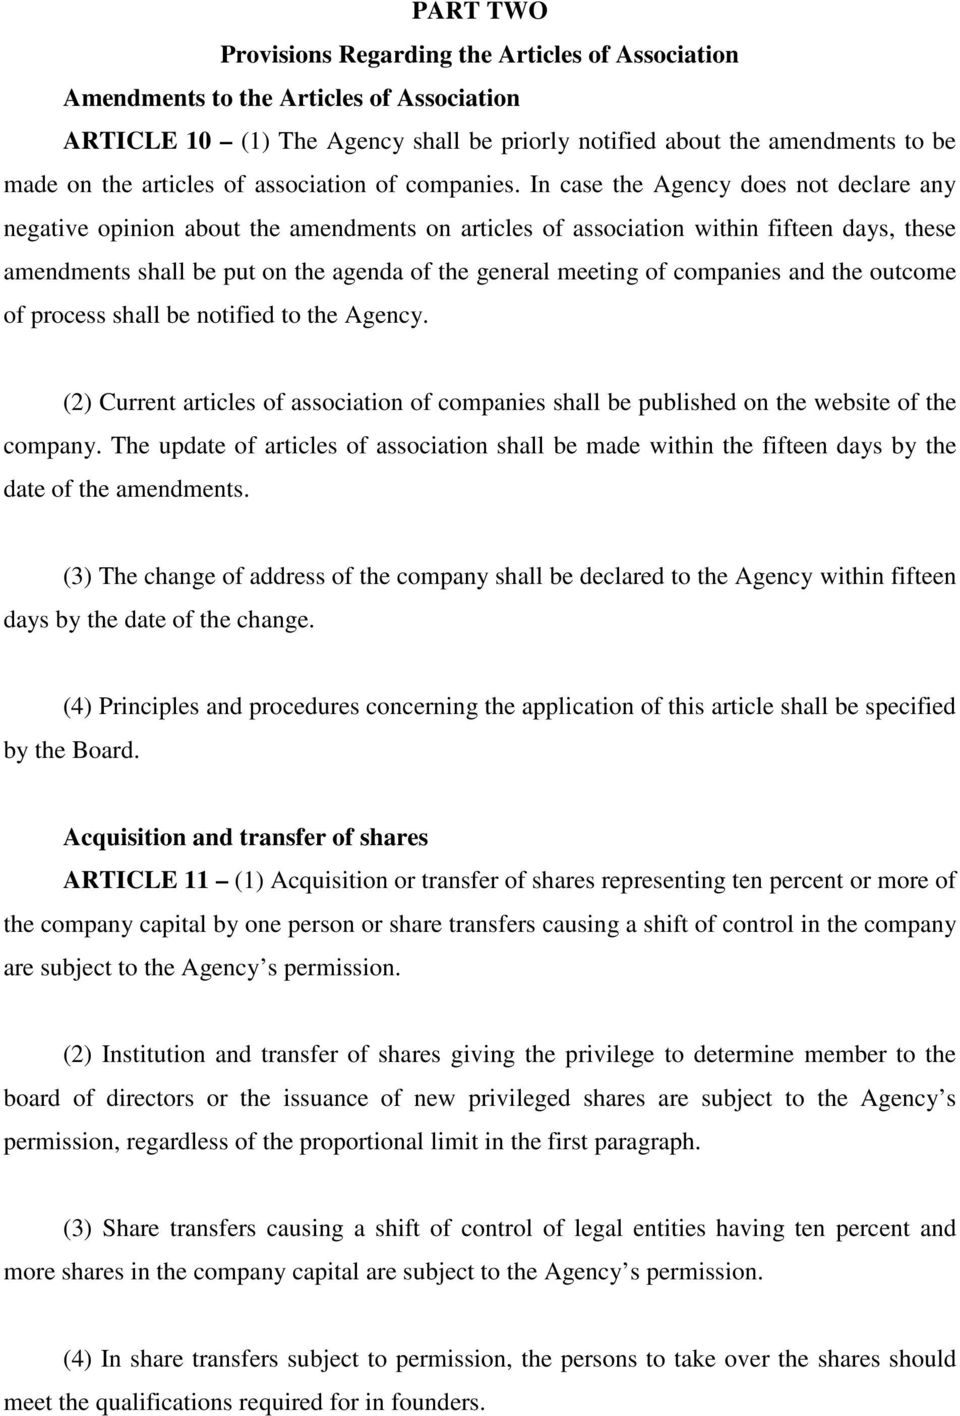 In case the Agency does not declare any negative opinion about the amendments on articles of association within fifteen days, these amendments shall be put on the agenda of the general meeting of